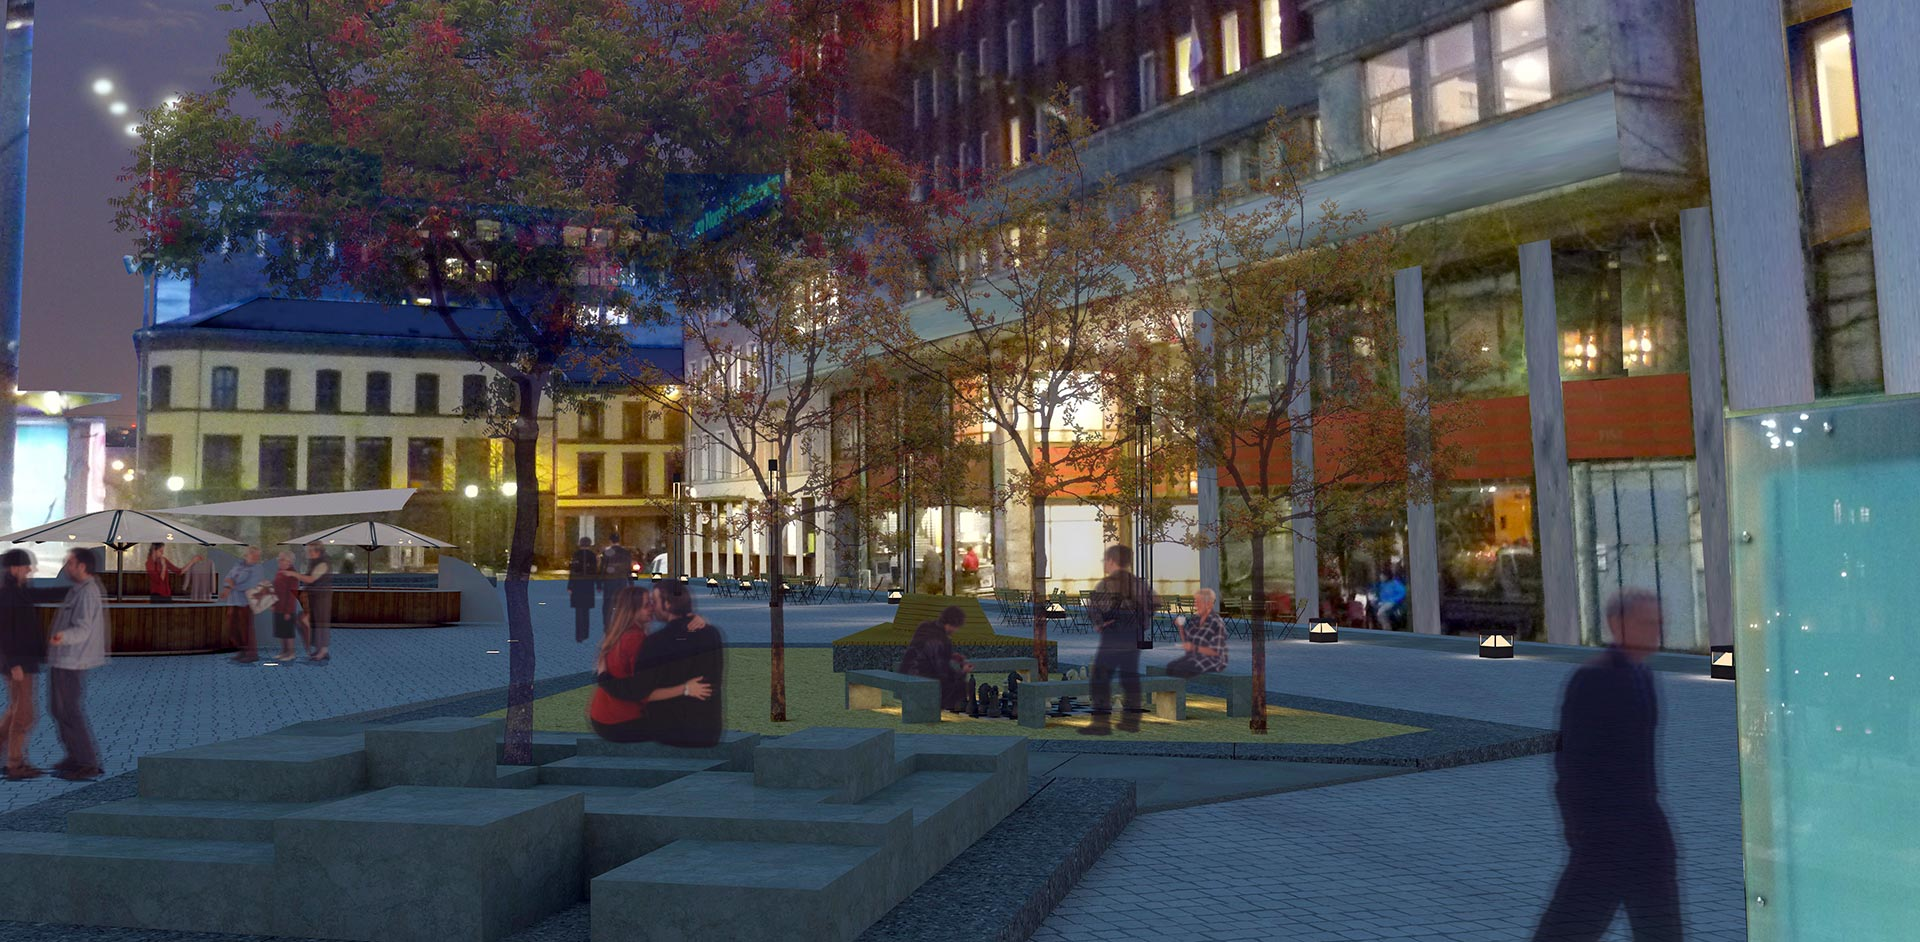 Youngstorget – Offentlig rom